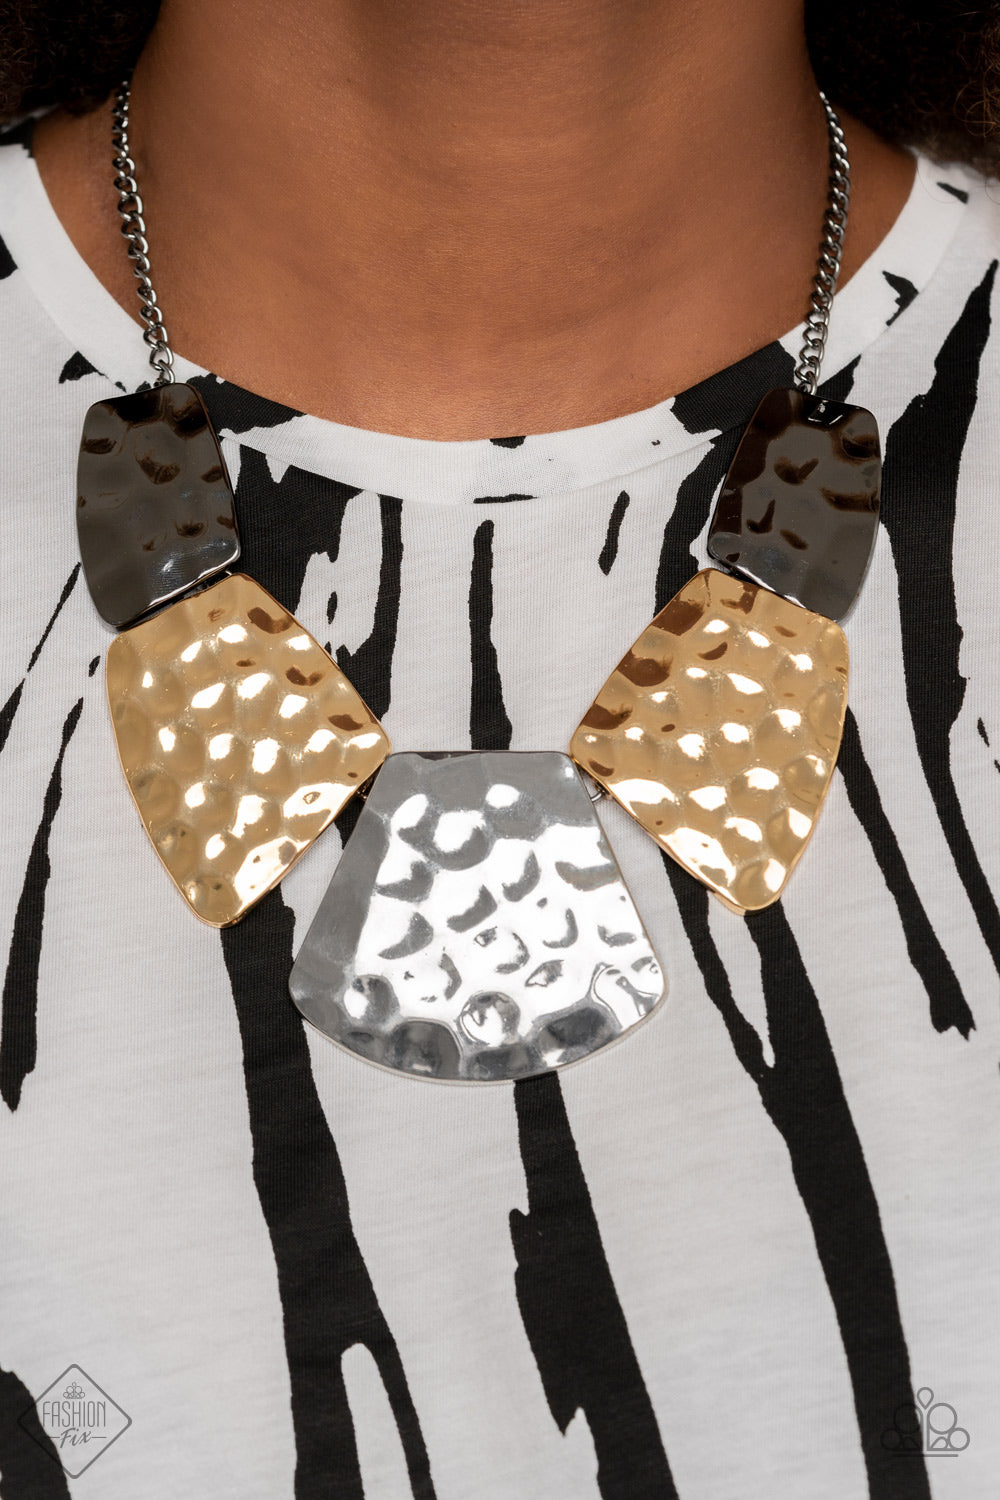 HAUTE Plates Necklace - Paparazzi Accessories